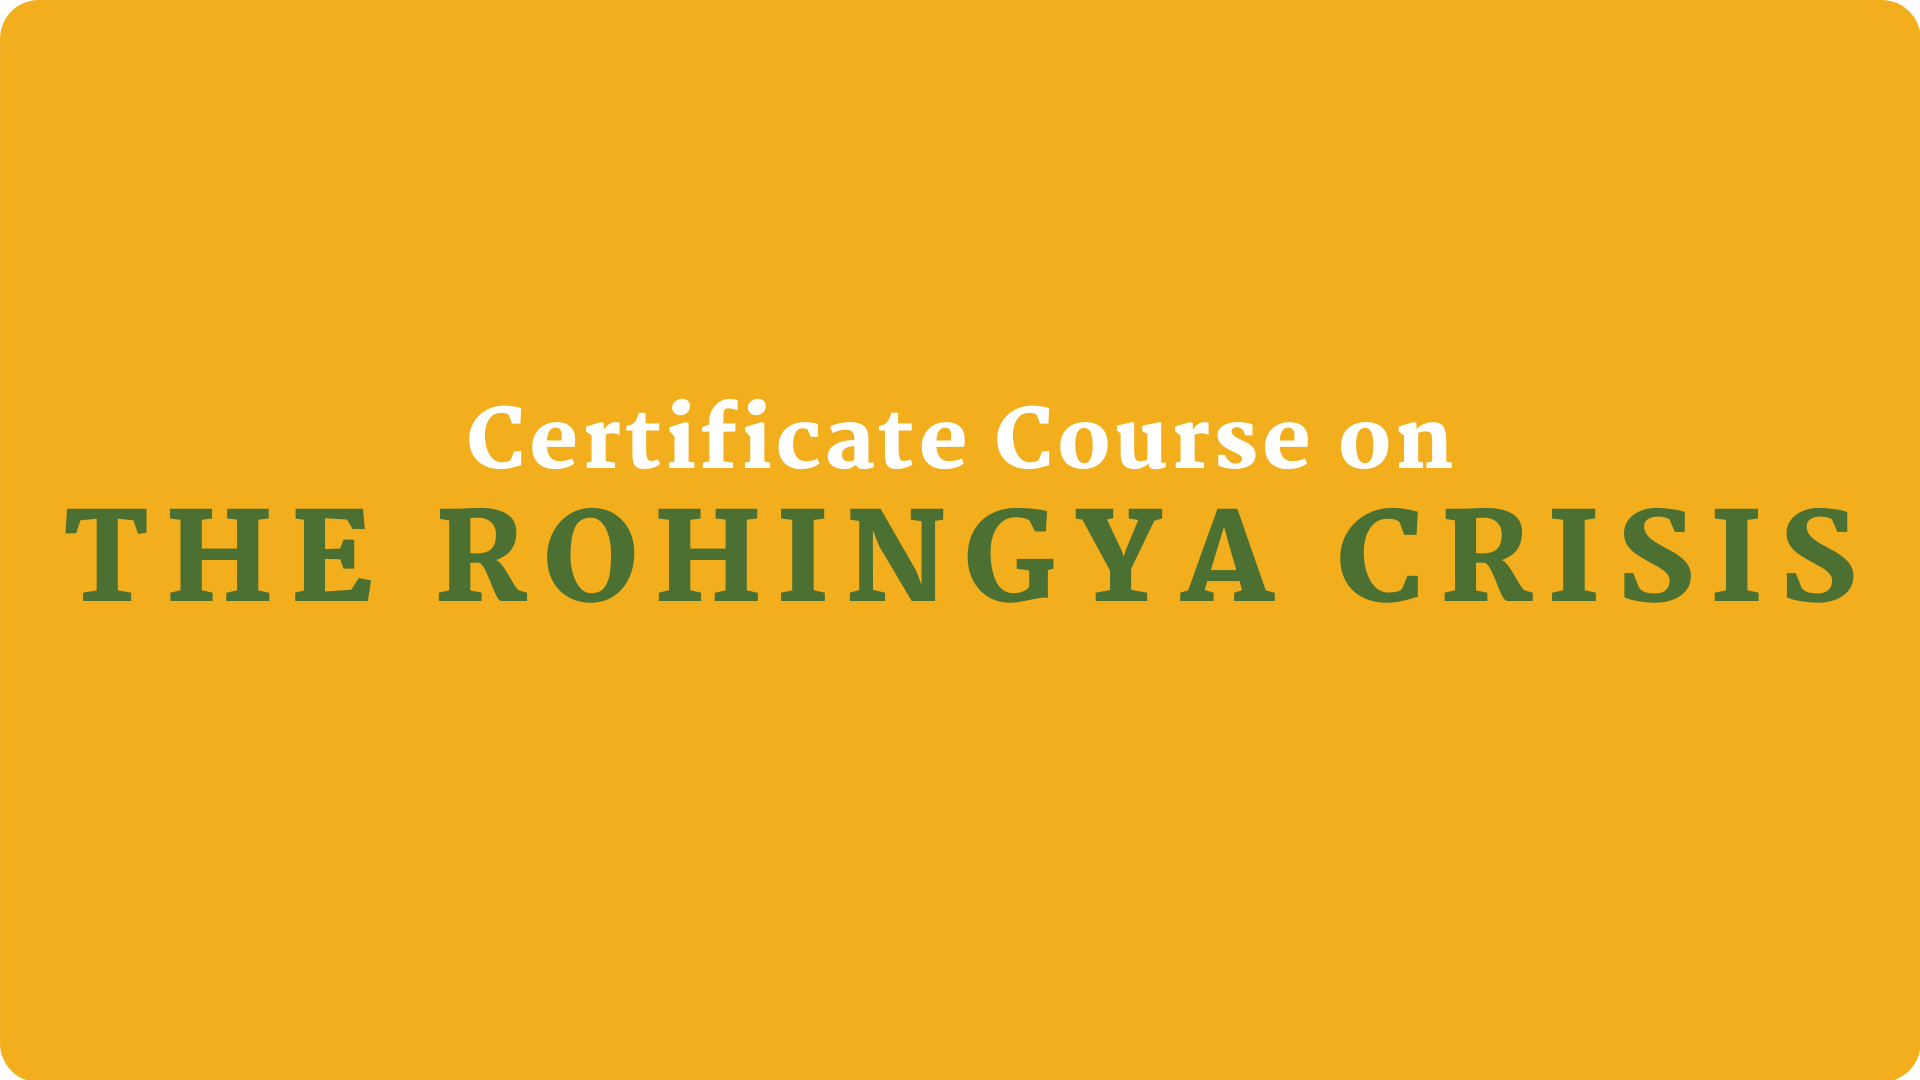 Certificate Course on the Rohingya Crisis